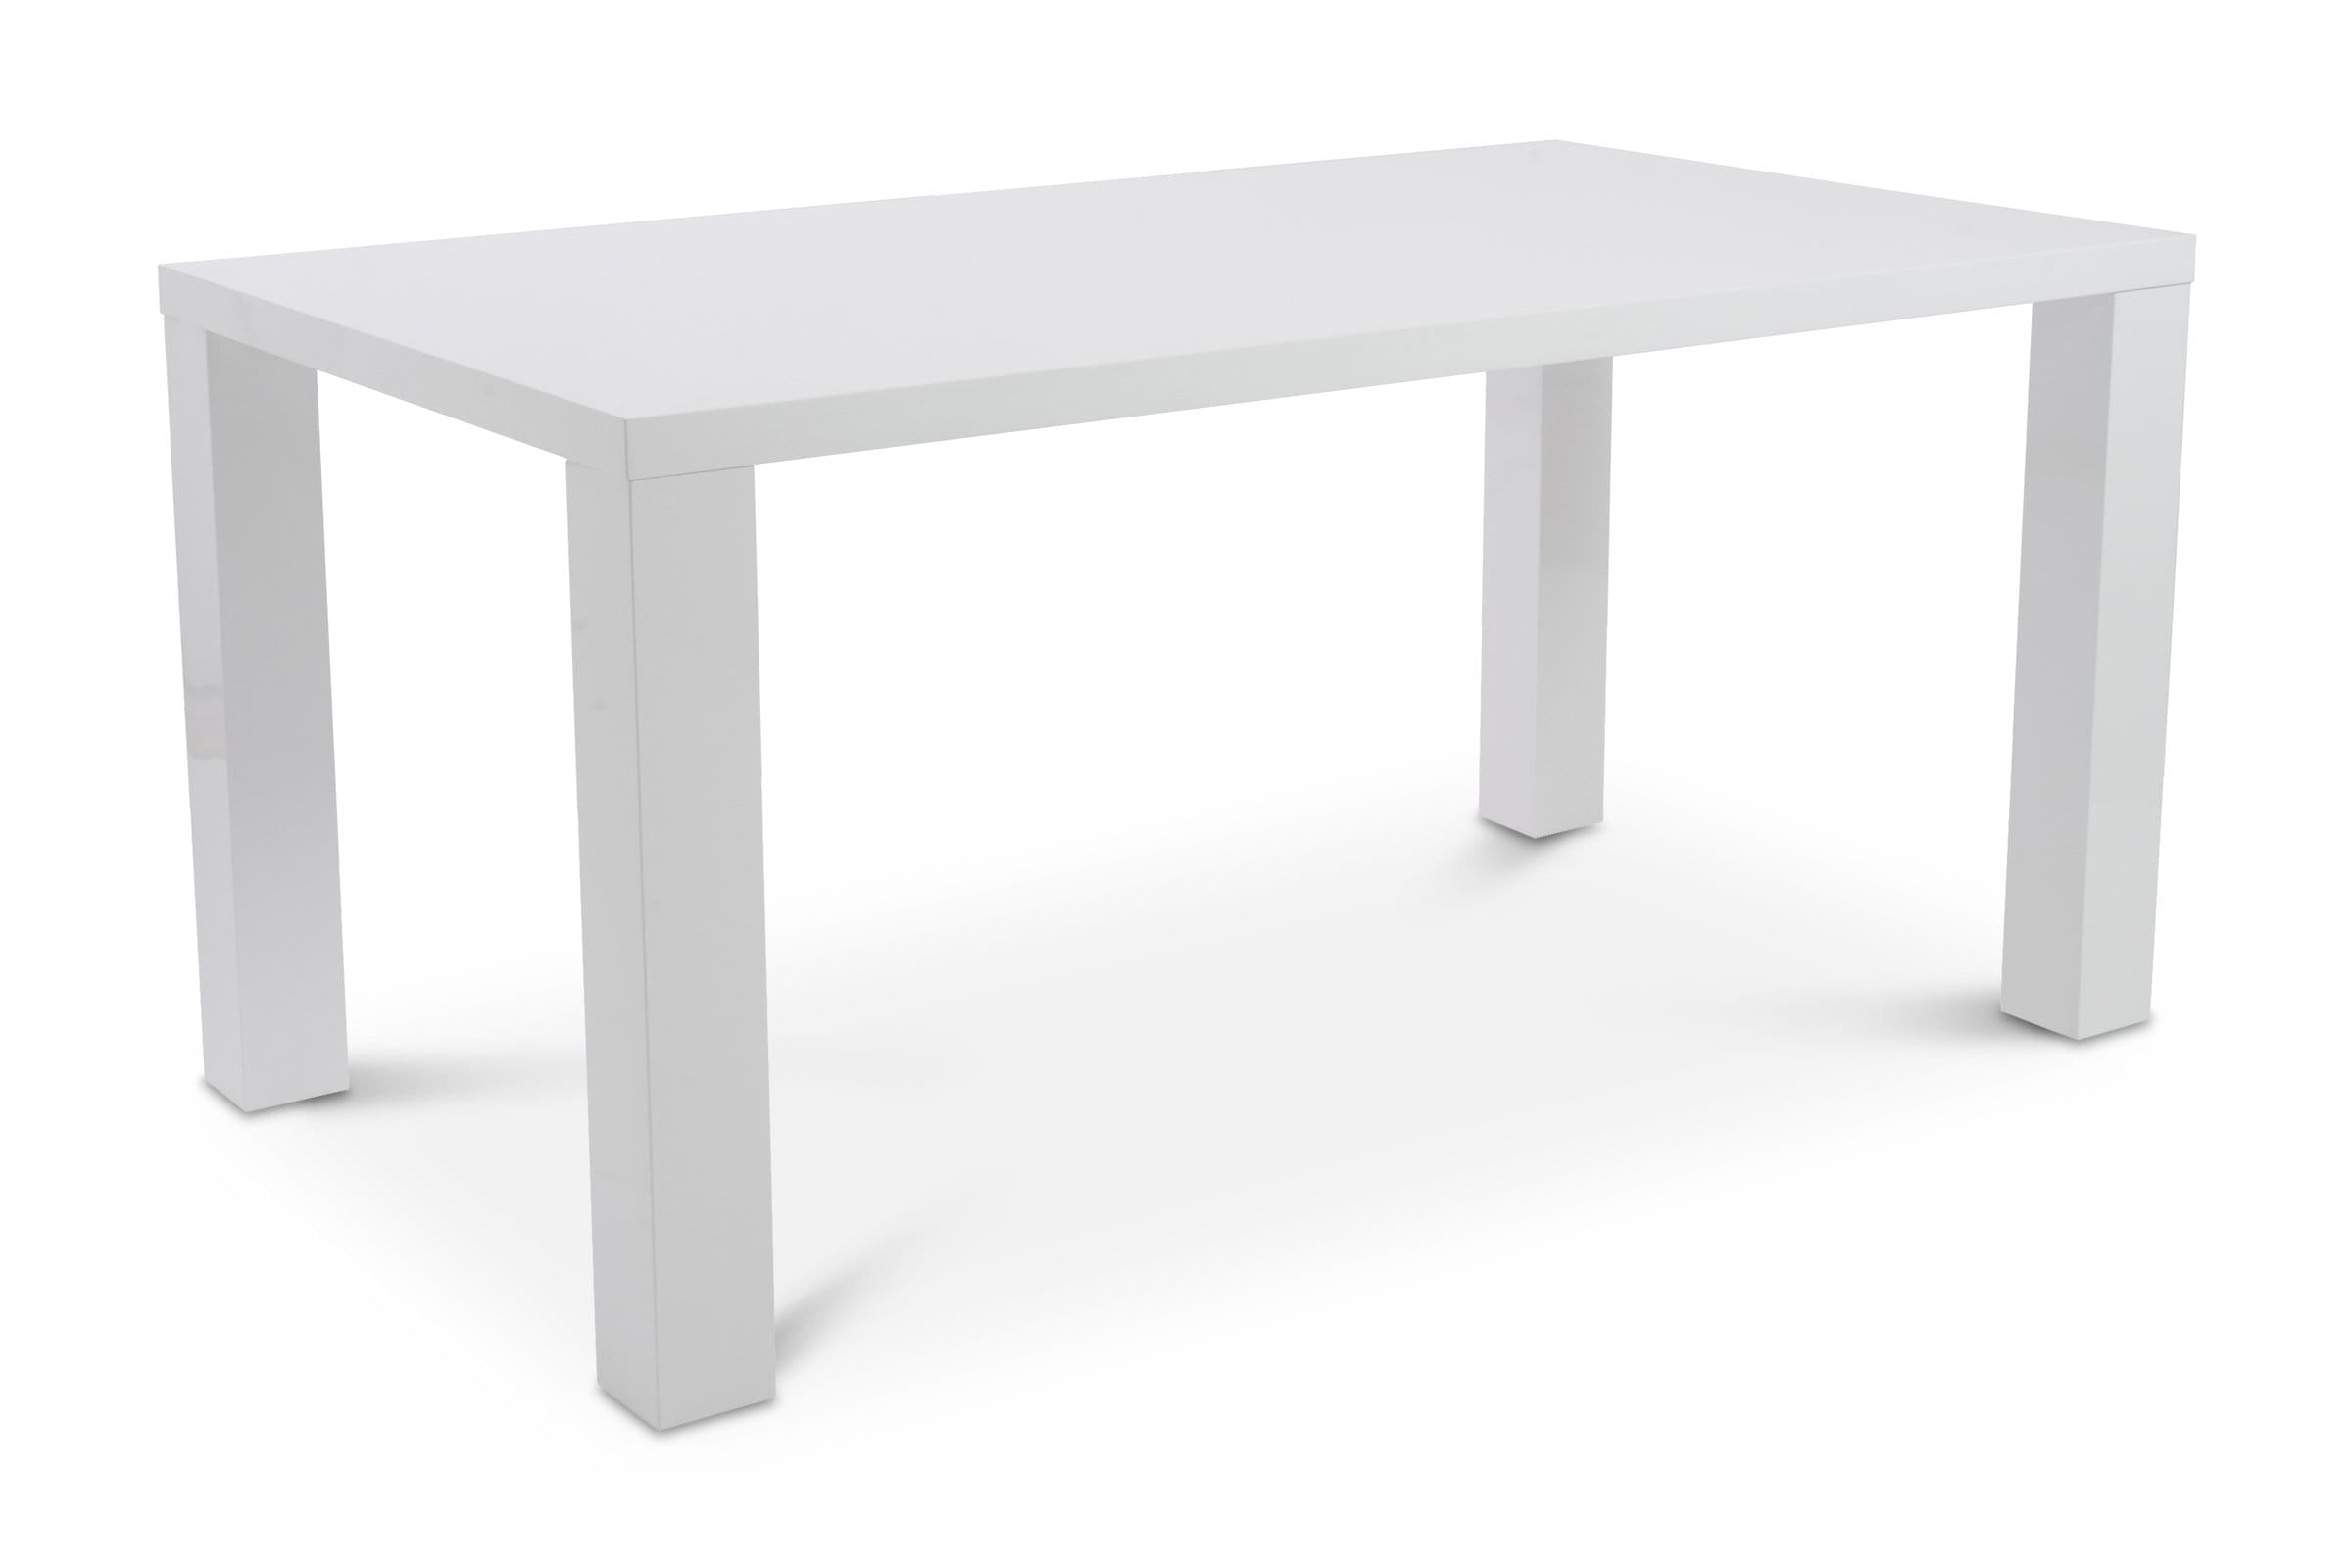 Cloverdale Table WHITE LACQUER - Modern Dining Tables Sold by Apt2B